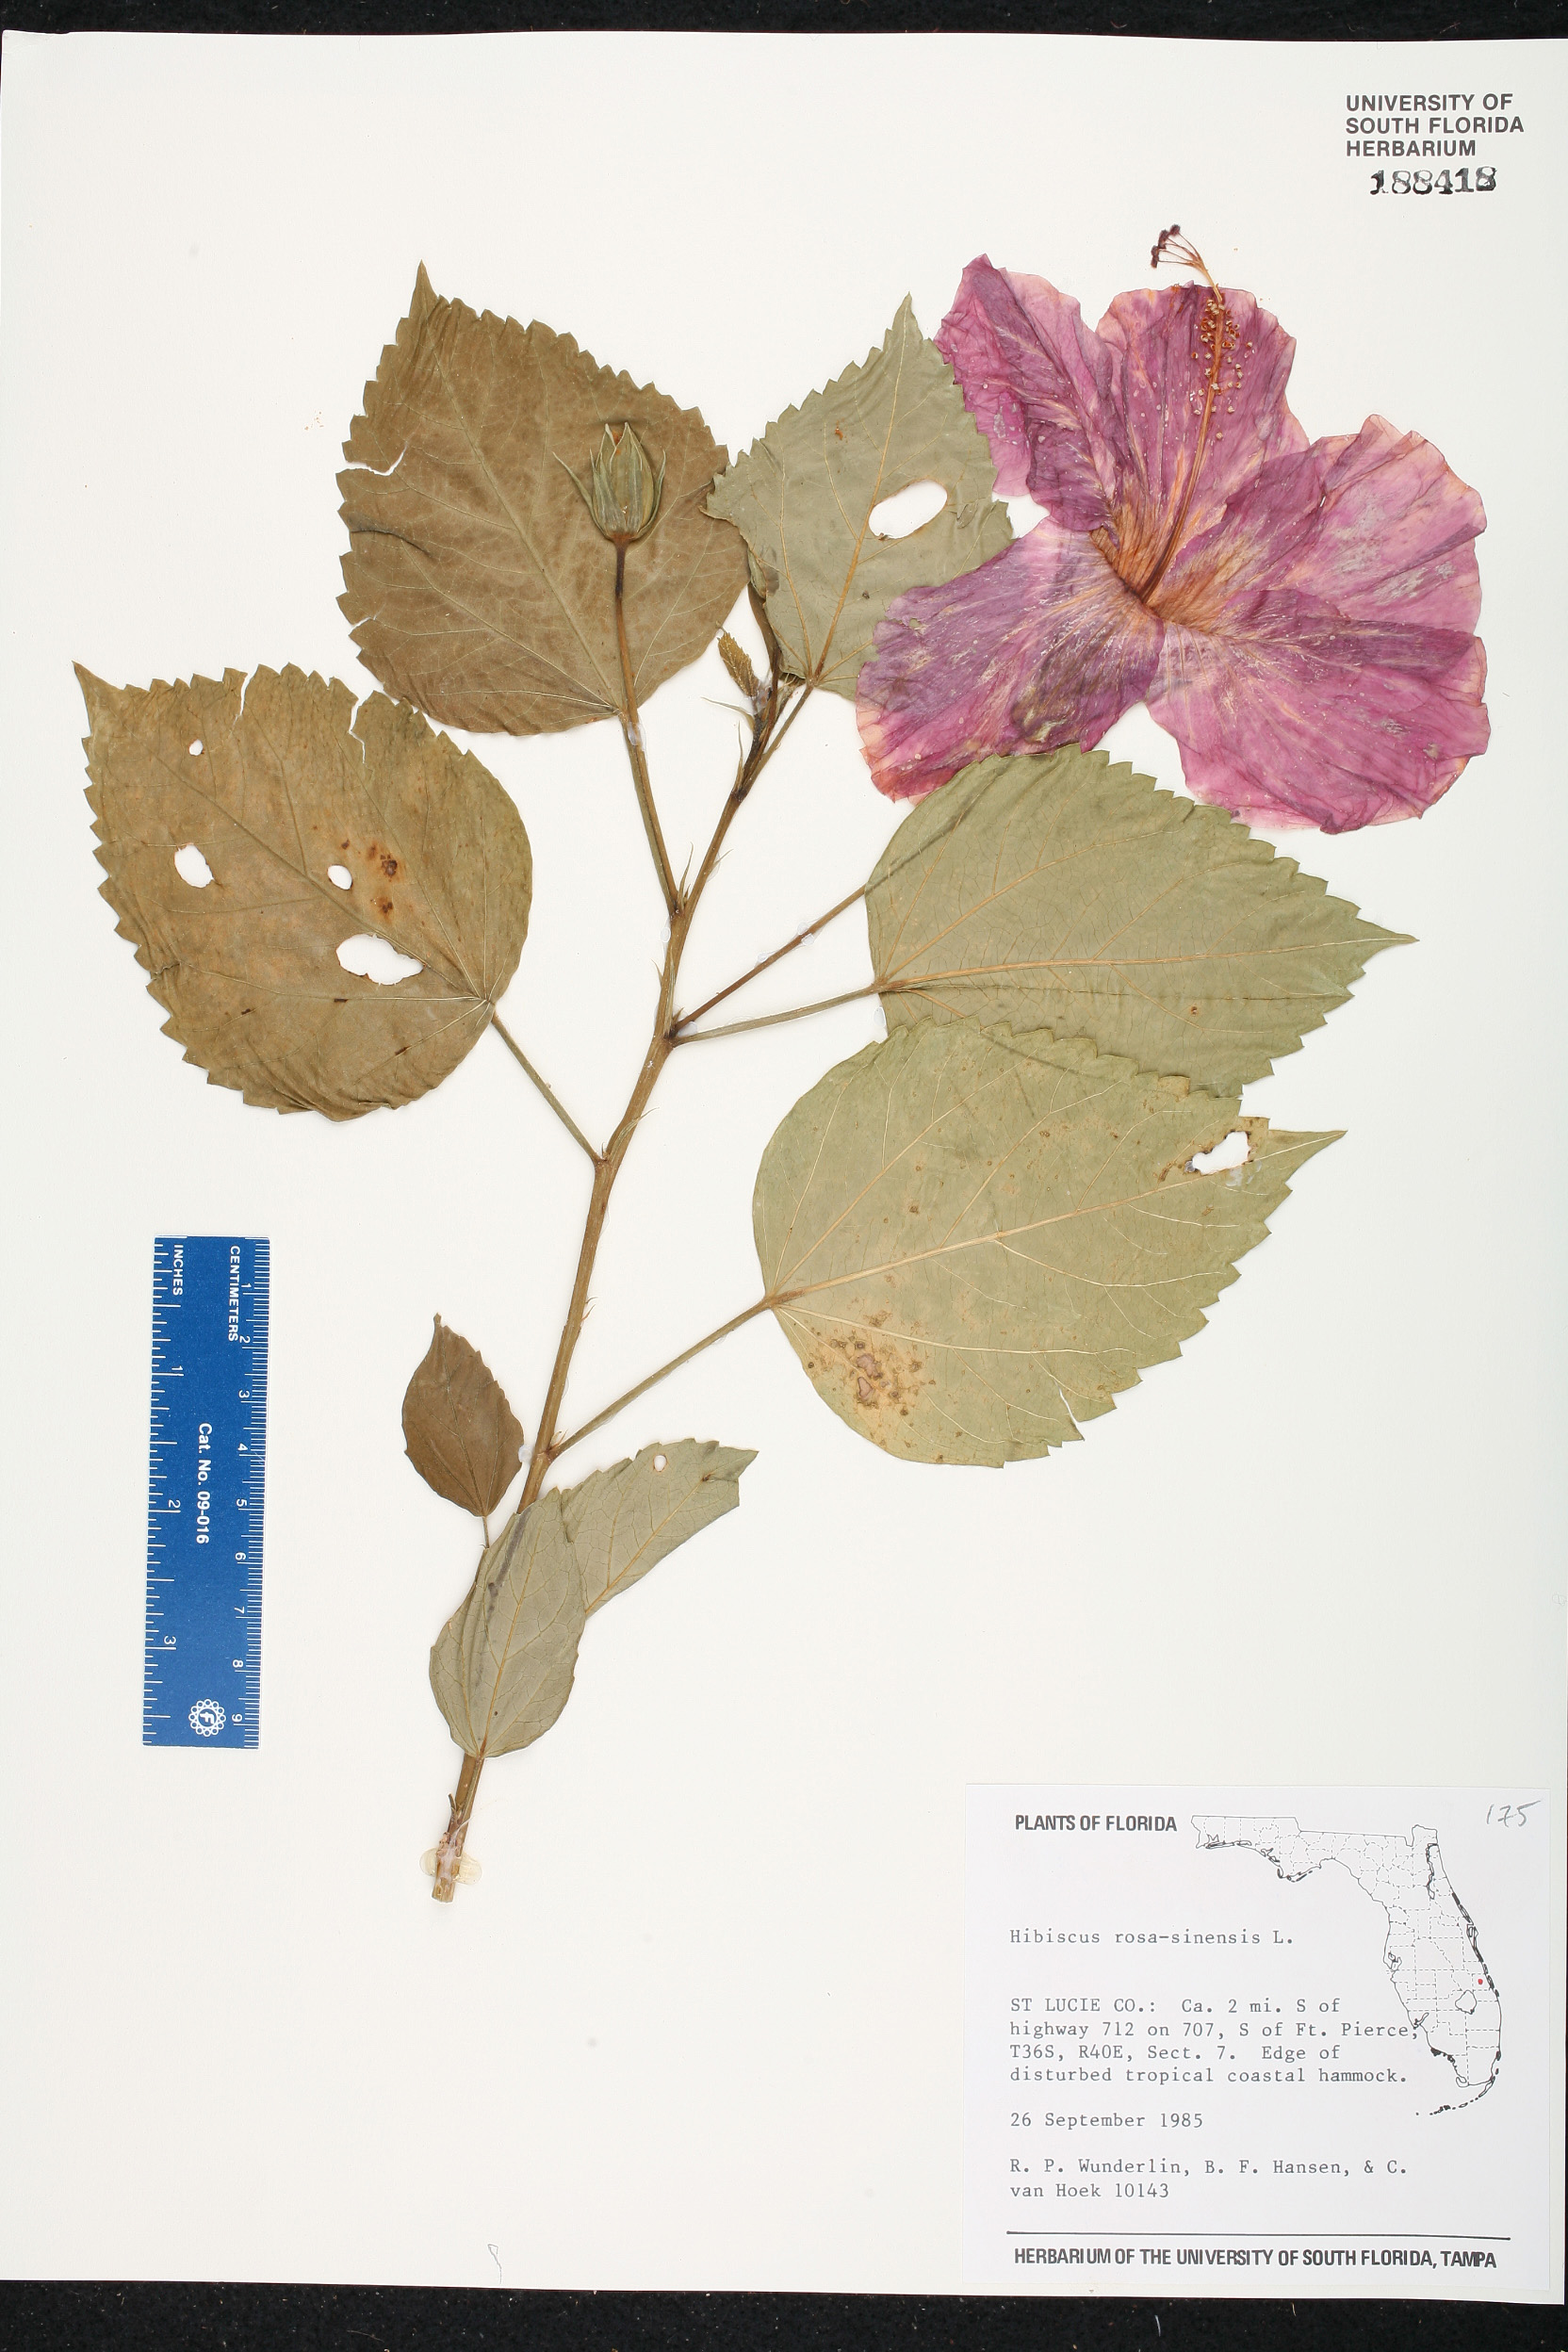 Herbarium specimen details isb atlas of florida plants family name izmirmasajfo Image collections